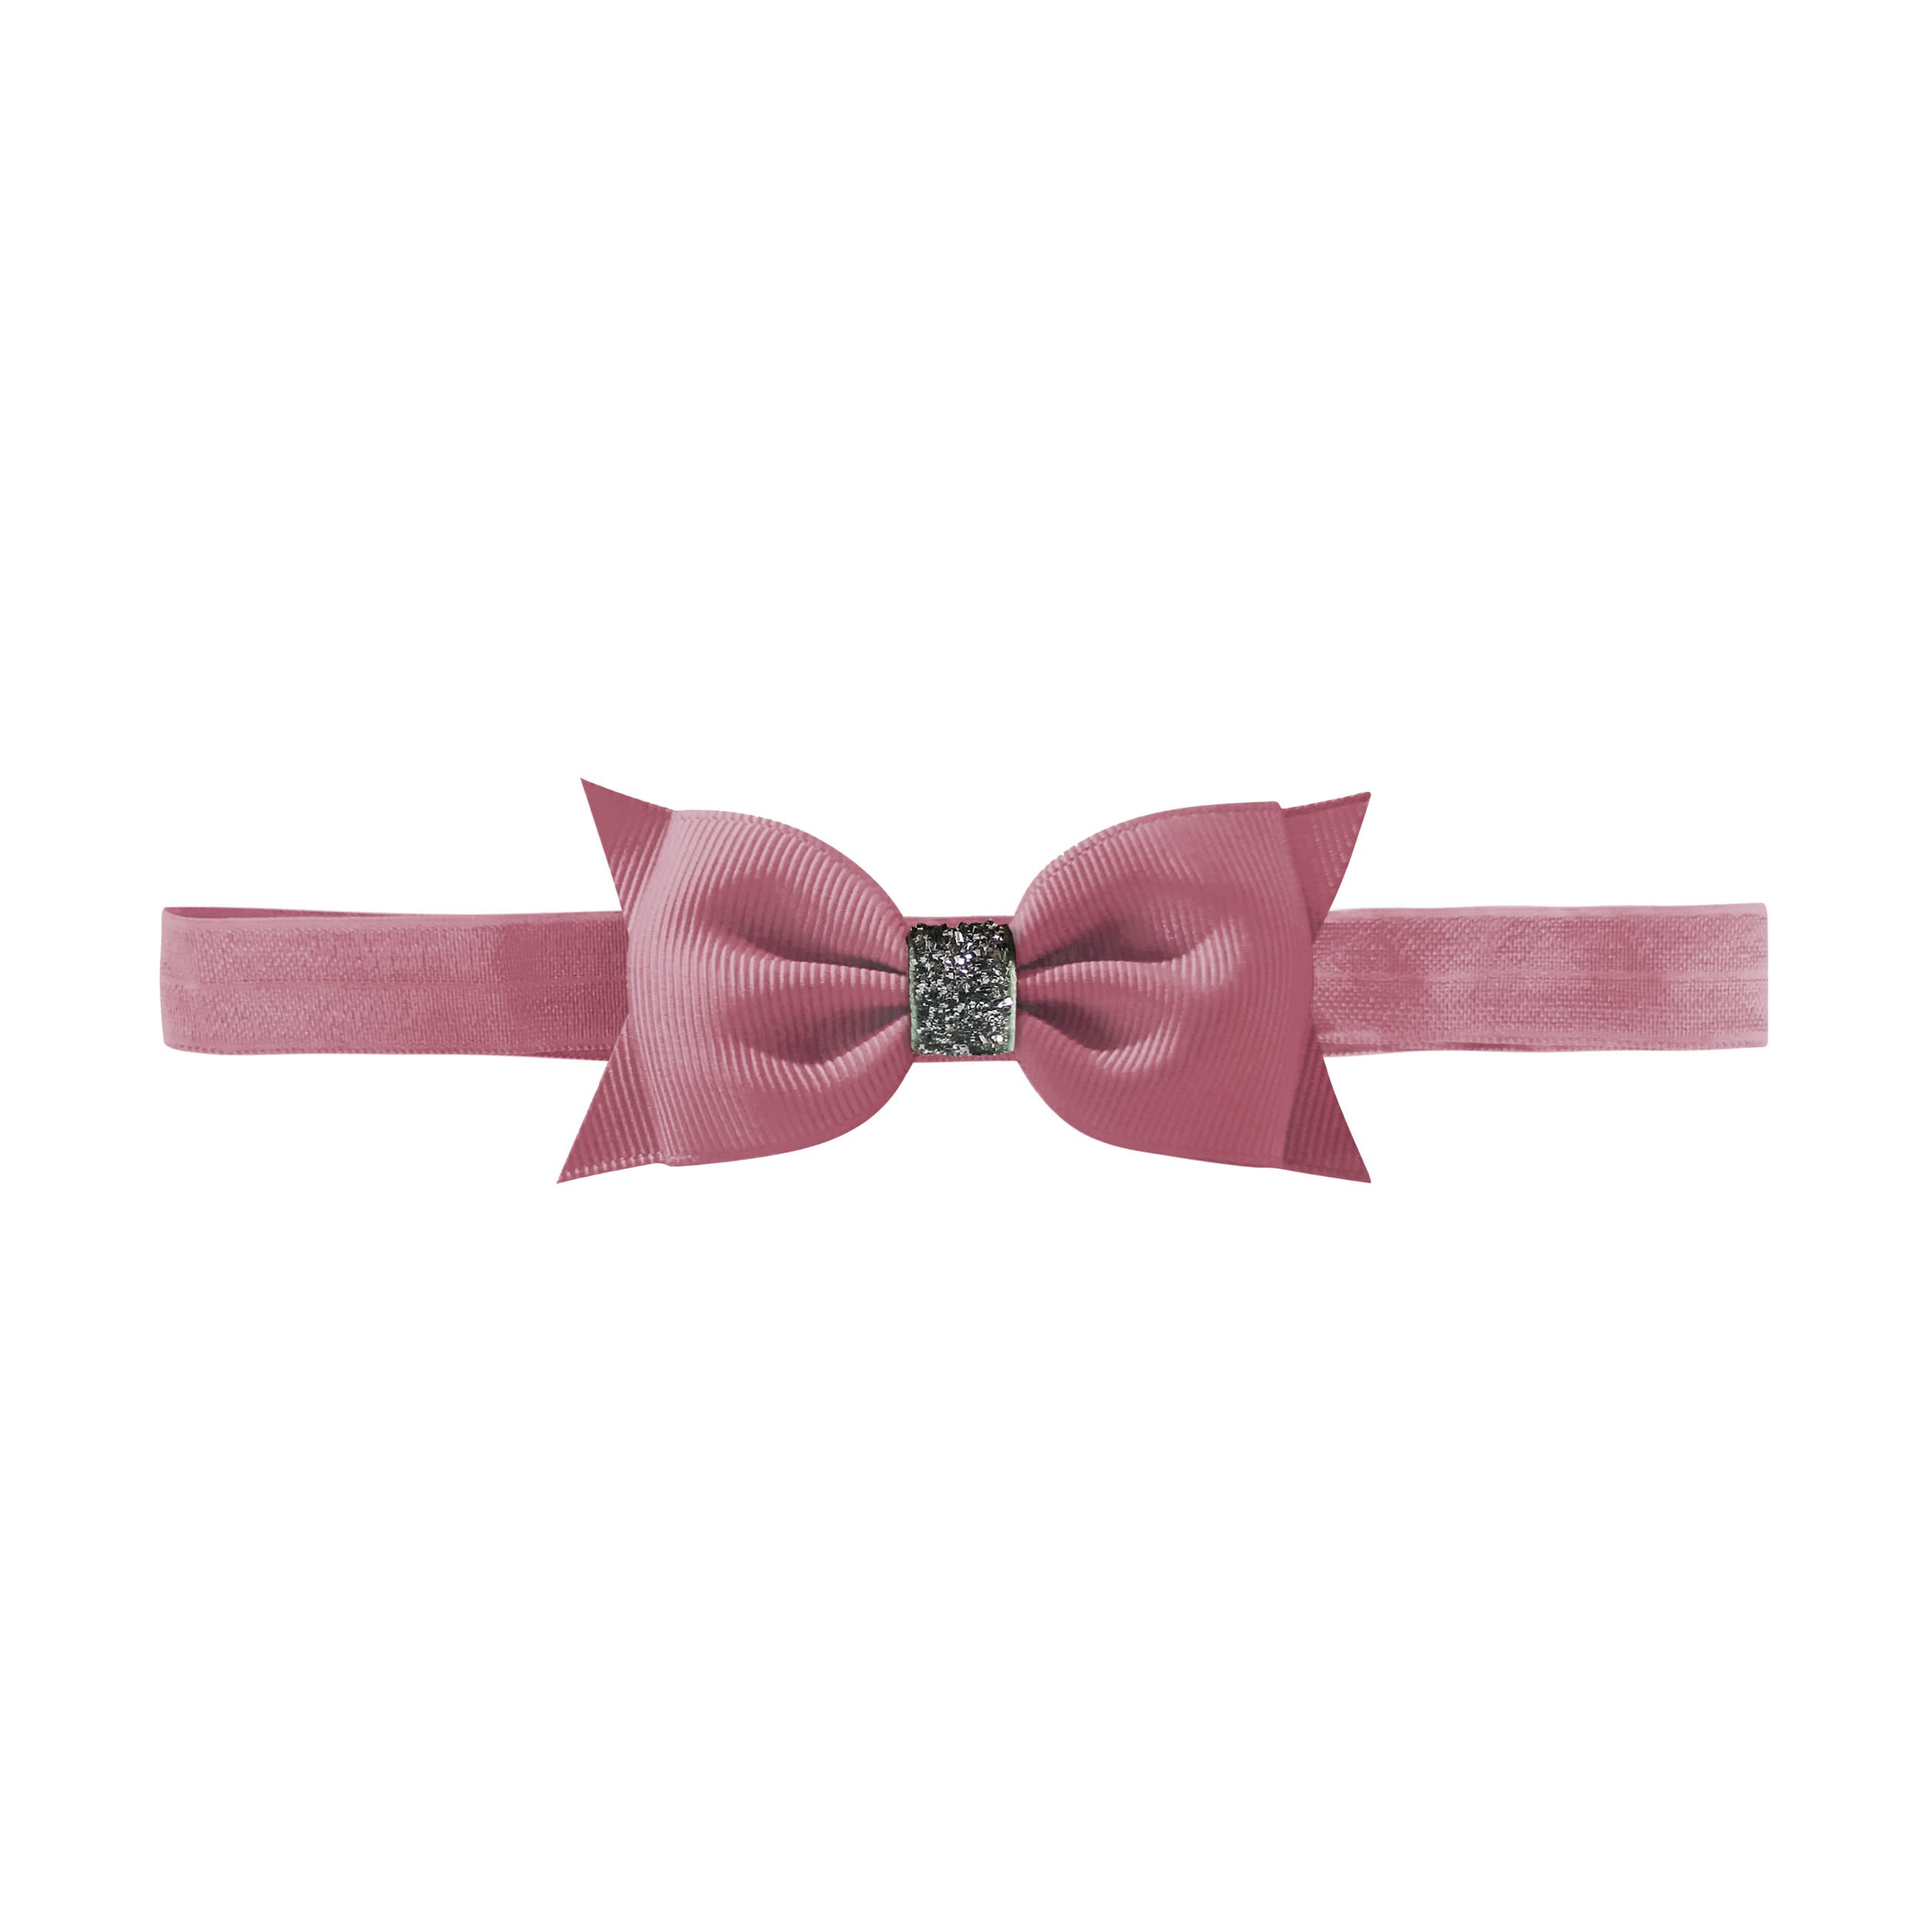 Image of   Double Bowtie bow - elastic hairband - rosy mauve glitter